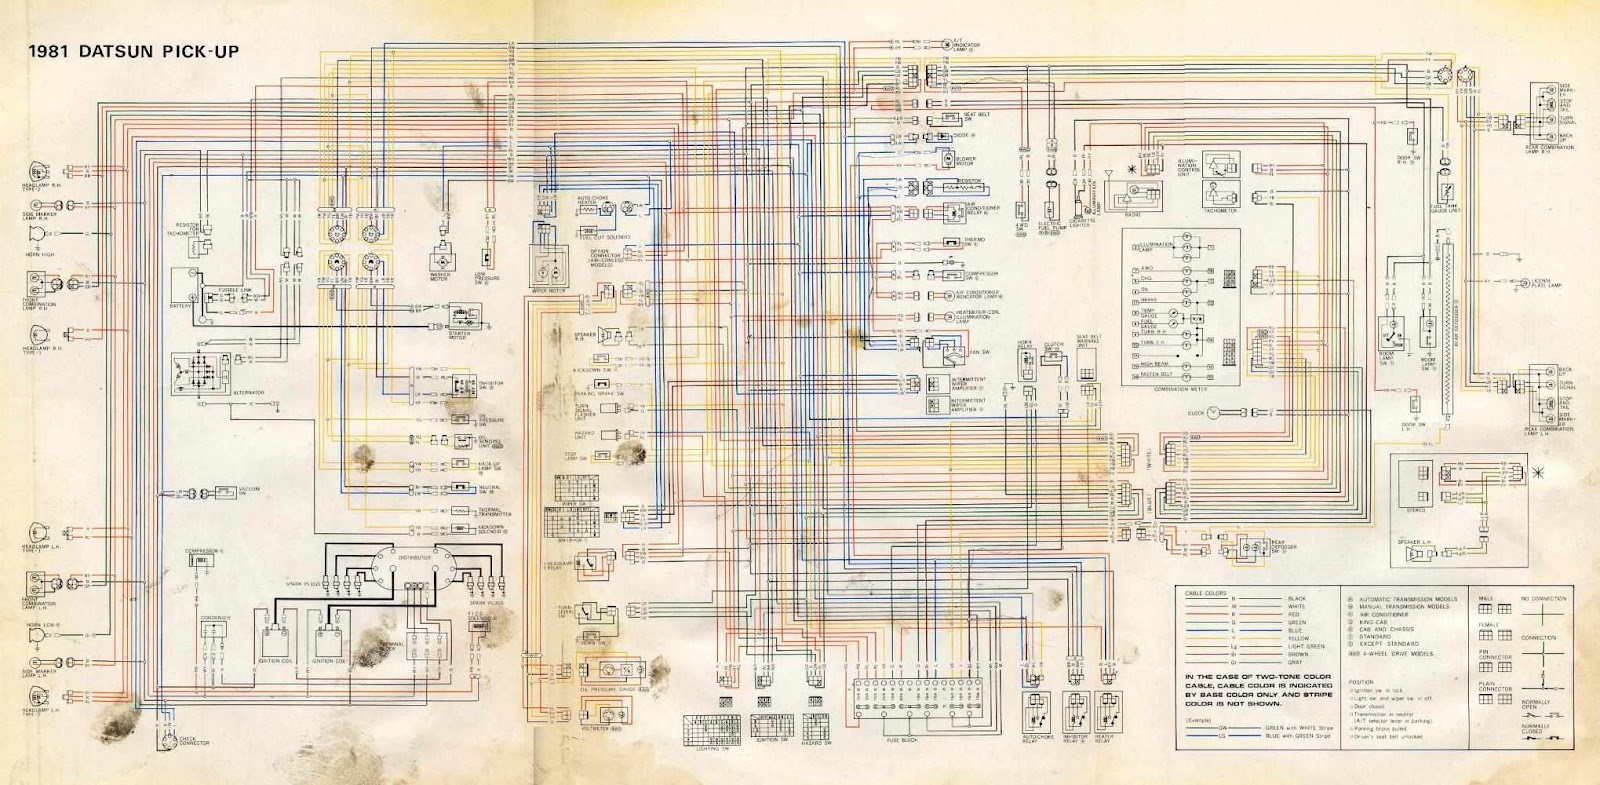 280z fuse box wiring library1969 datsun roadster wiring diagram 1969 free engine [ 1600 x 785 Pixel ]